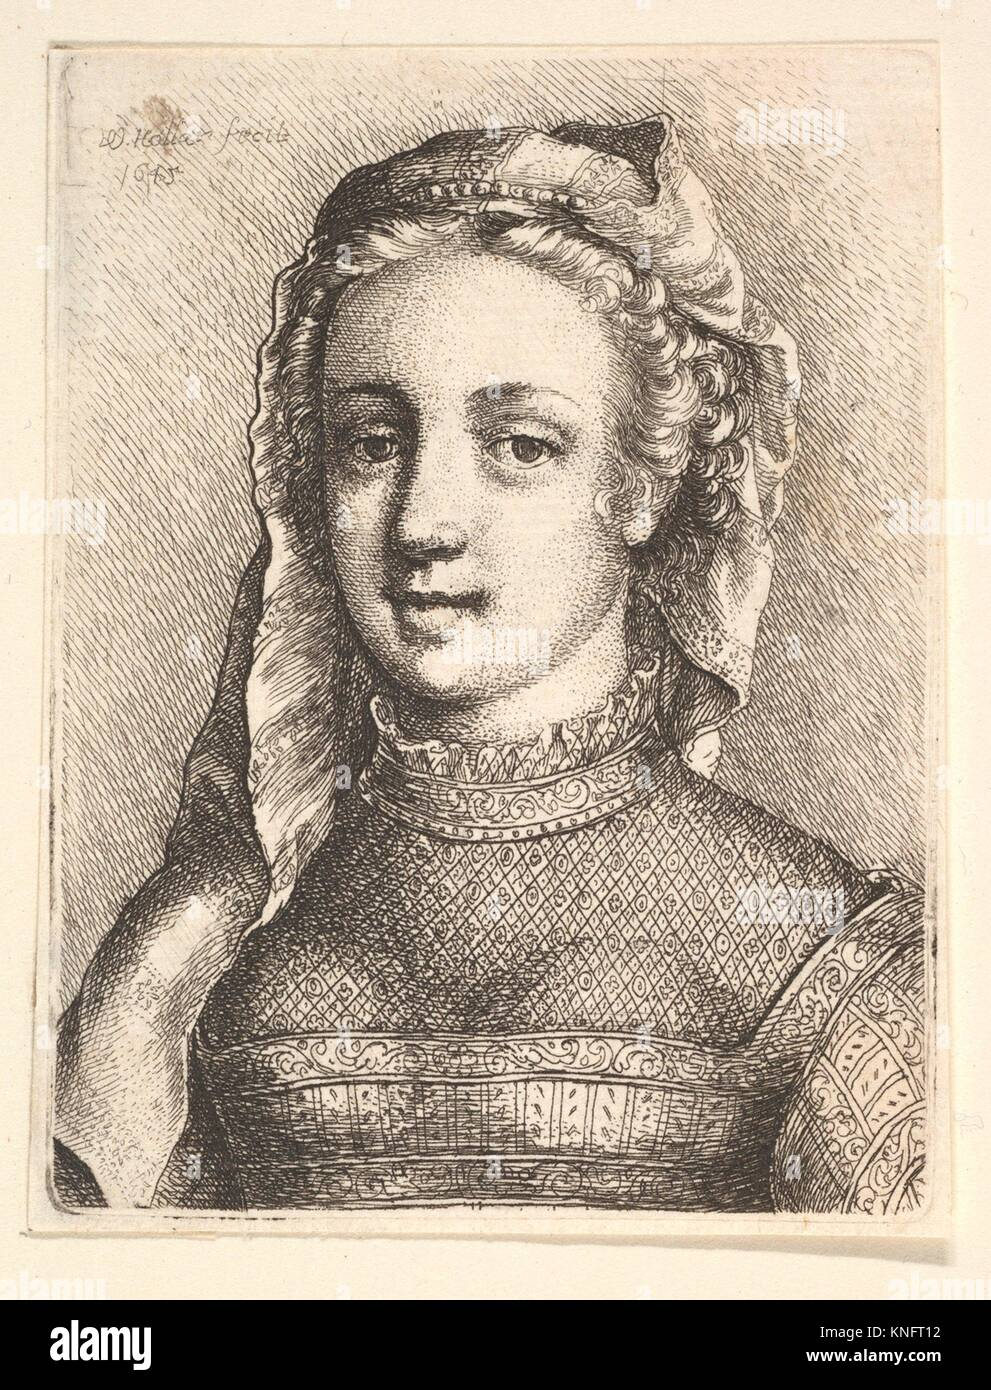 Head and shoulders of a woman with a veil and diaphanous neckware. Artist: Wenceslaus Hollar (Bohemian, Prague 1607 - Stock Image